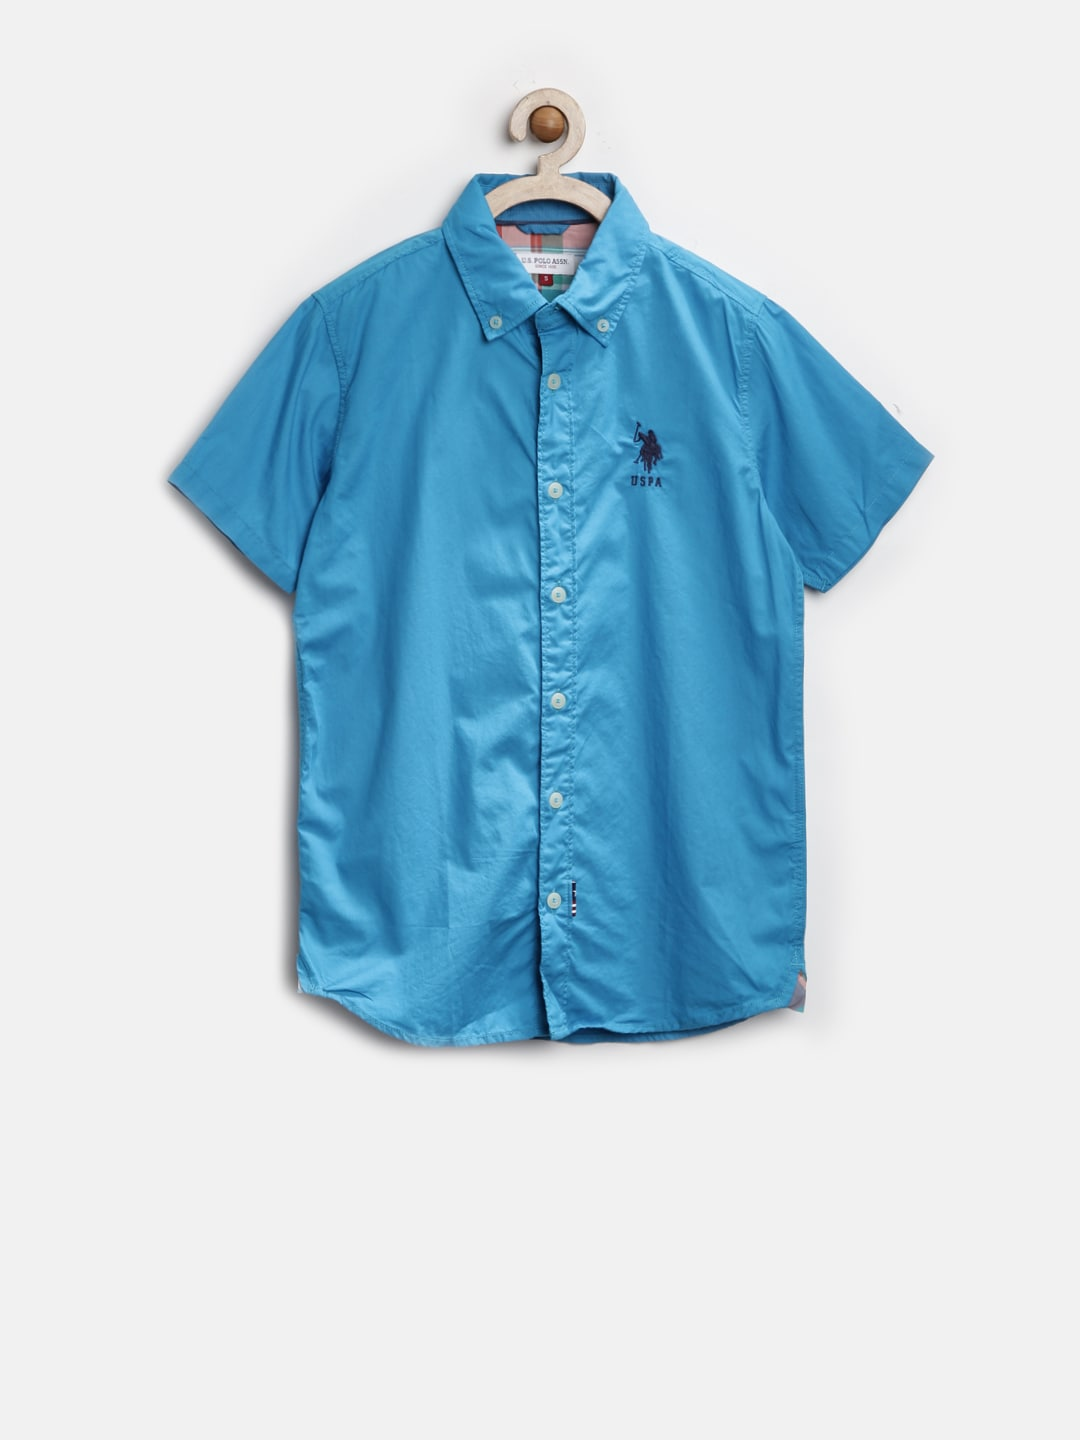 U.S. Polo Assn. Boys Blue Shirt